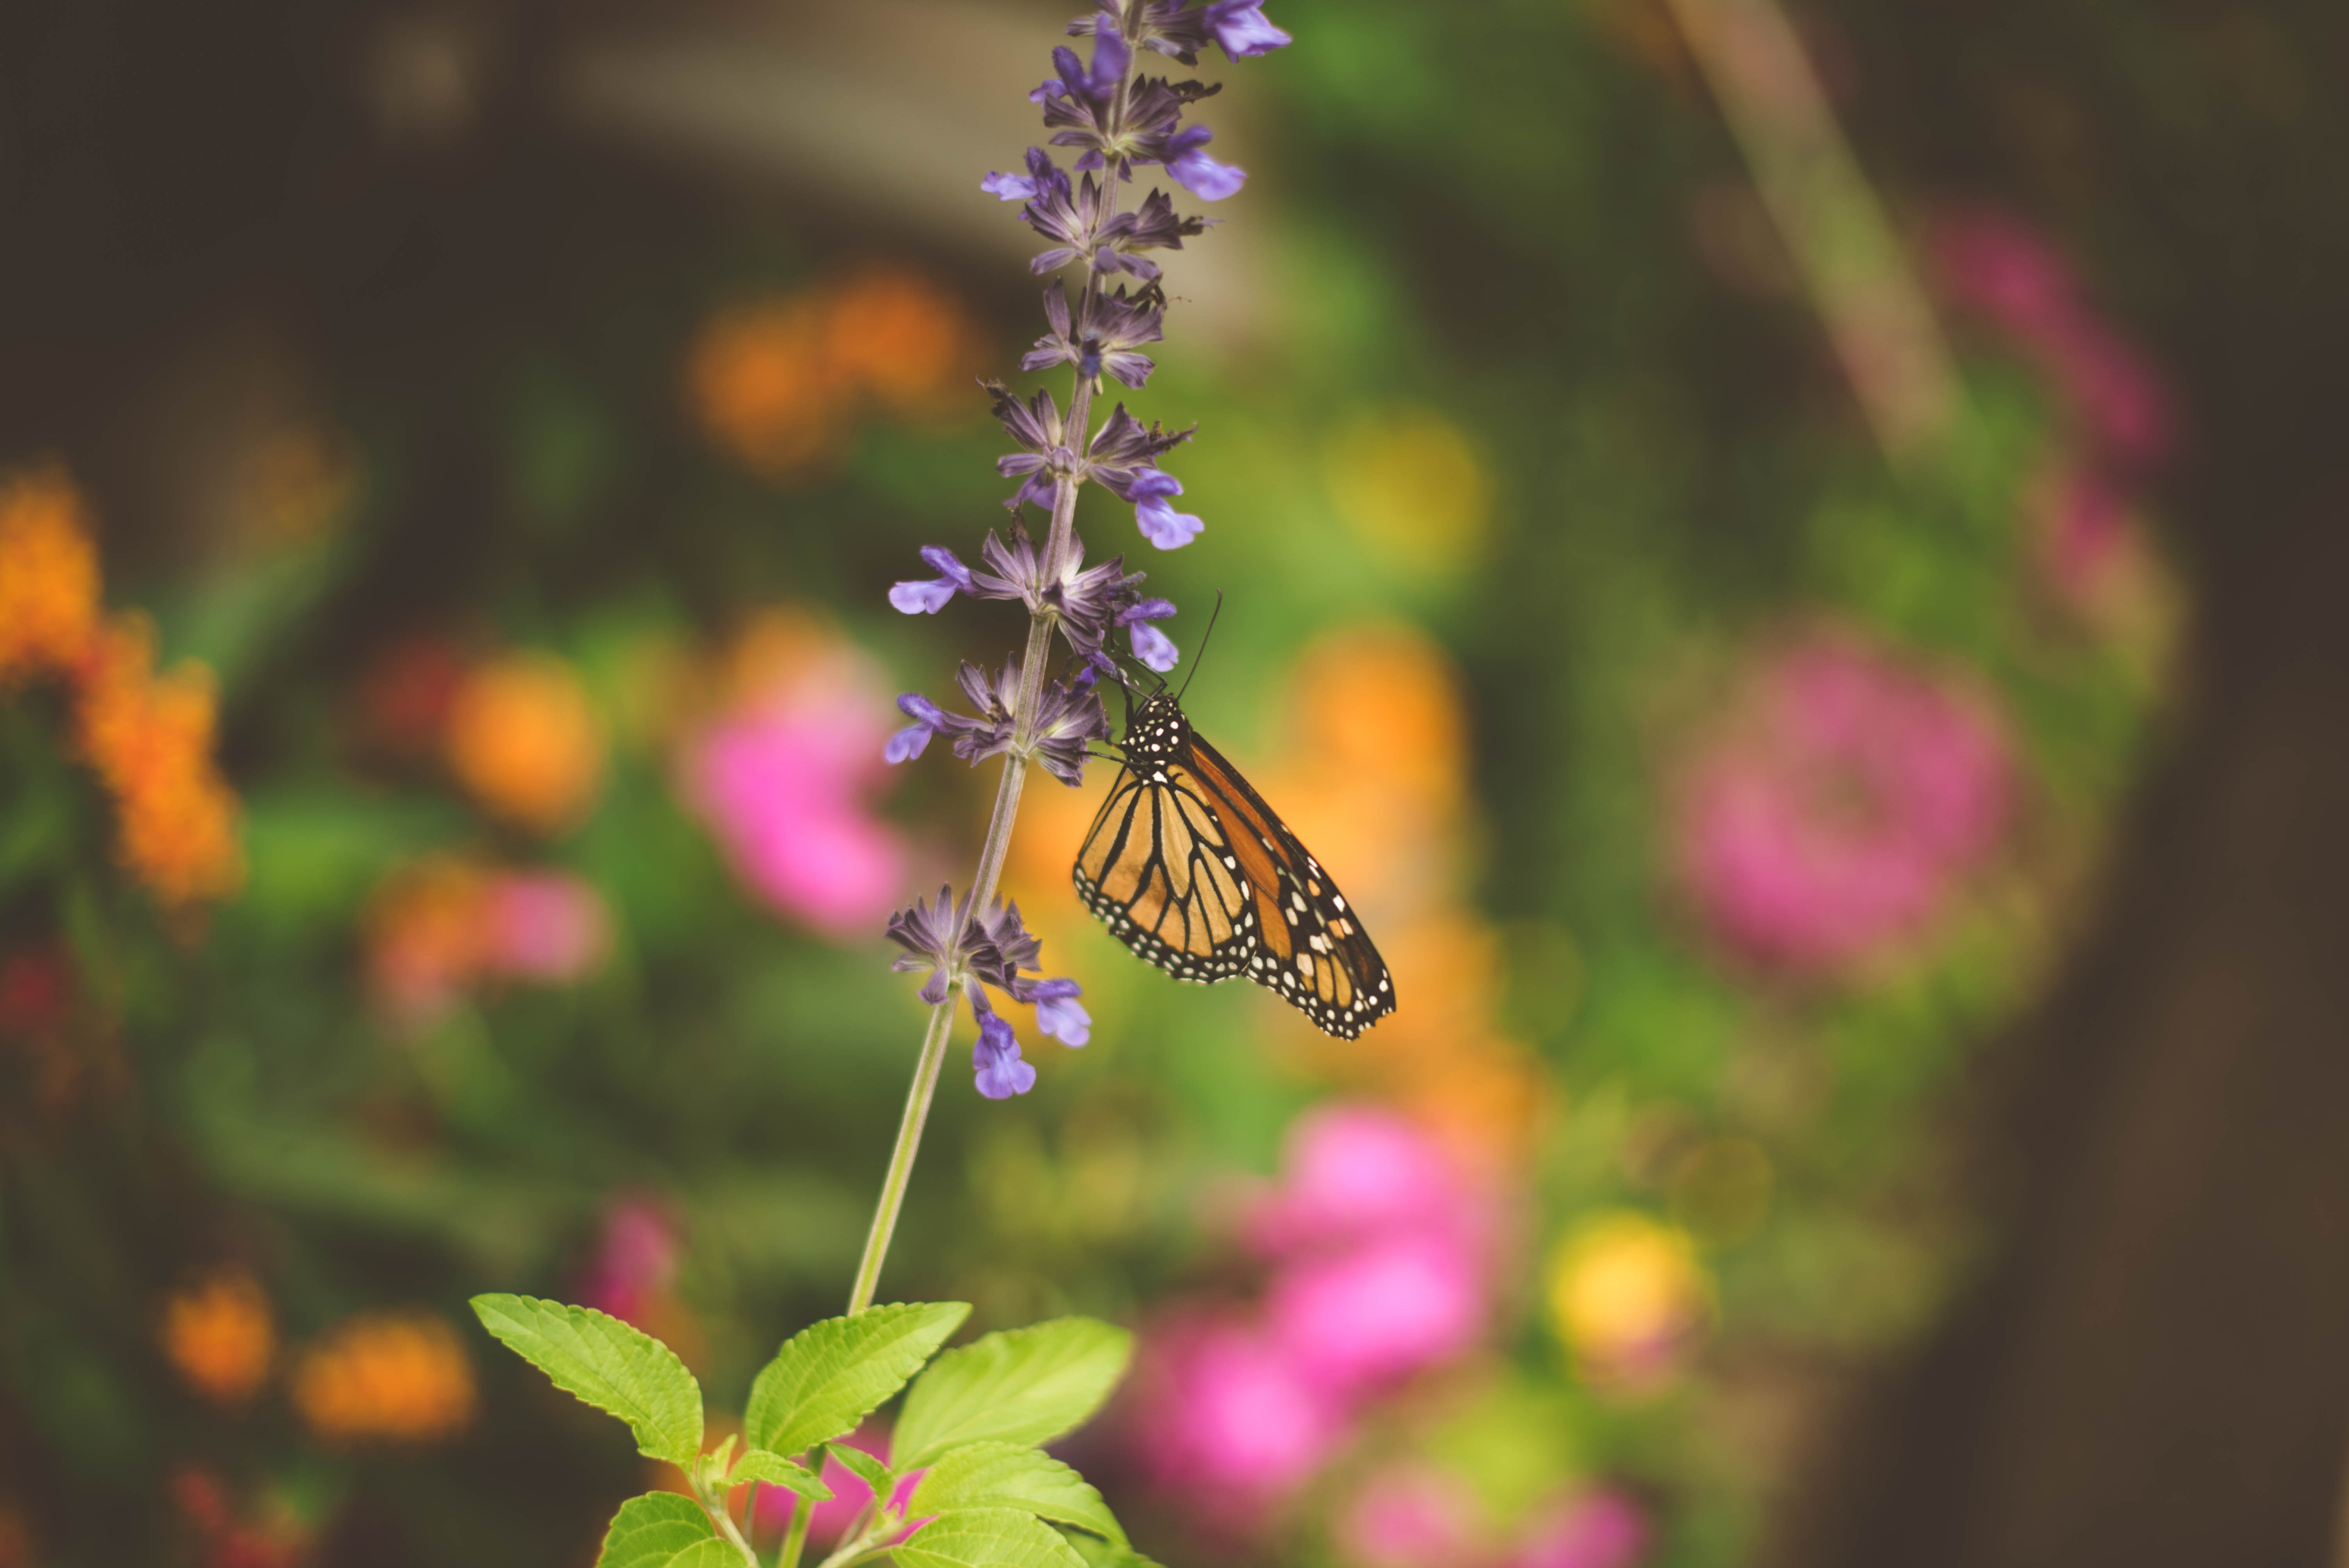 selective focus photo of brown, white, and black butterfly sipping nectar on purple flower